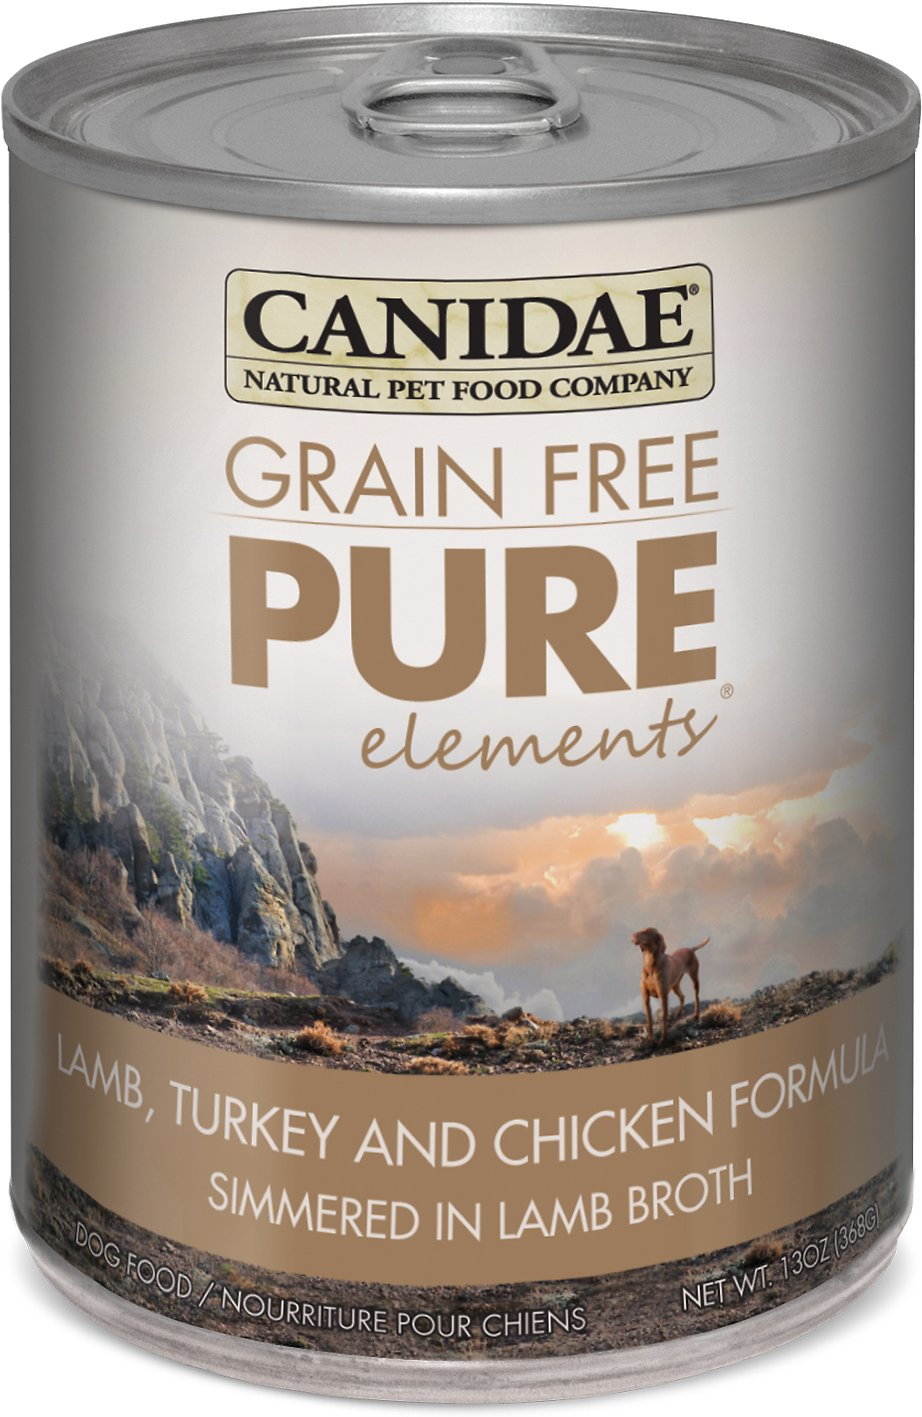 CANIDAE Grain-Free PURE Elements Lamb, Turkey & Chicken Formula Canned Dog Food, 13-oz